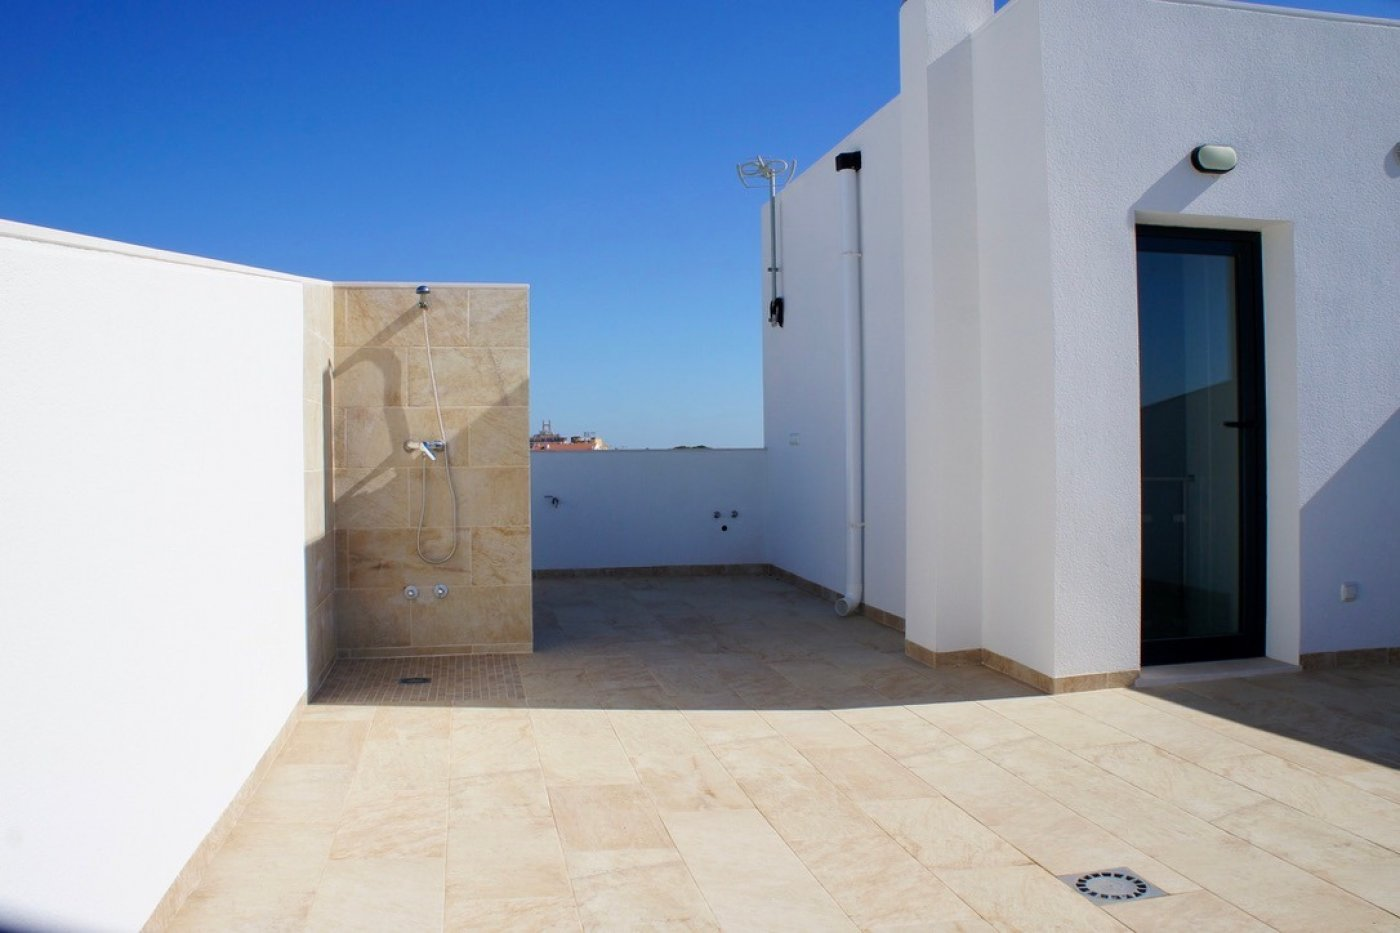 Gallery Image 18 of Key ready detached  3 bed, 3 bath villa with swimming pool at a very competitive price